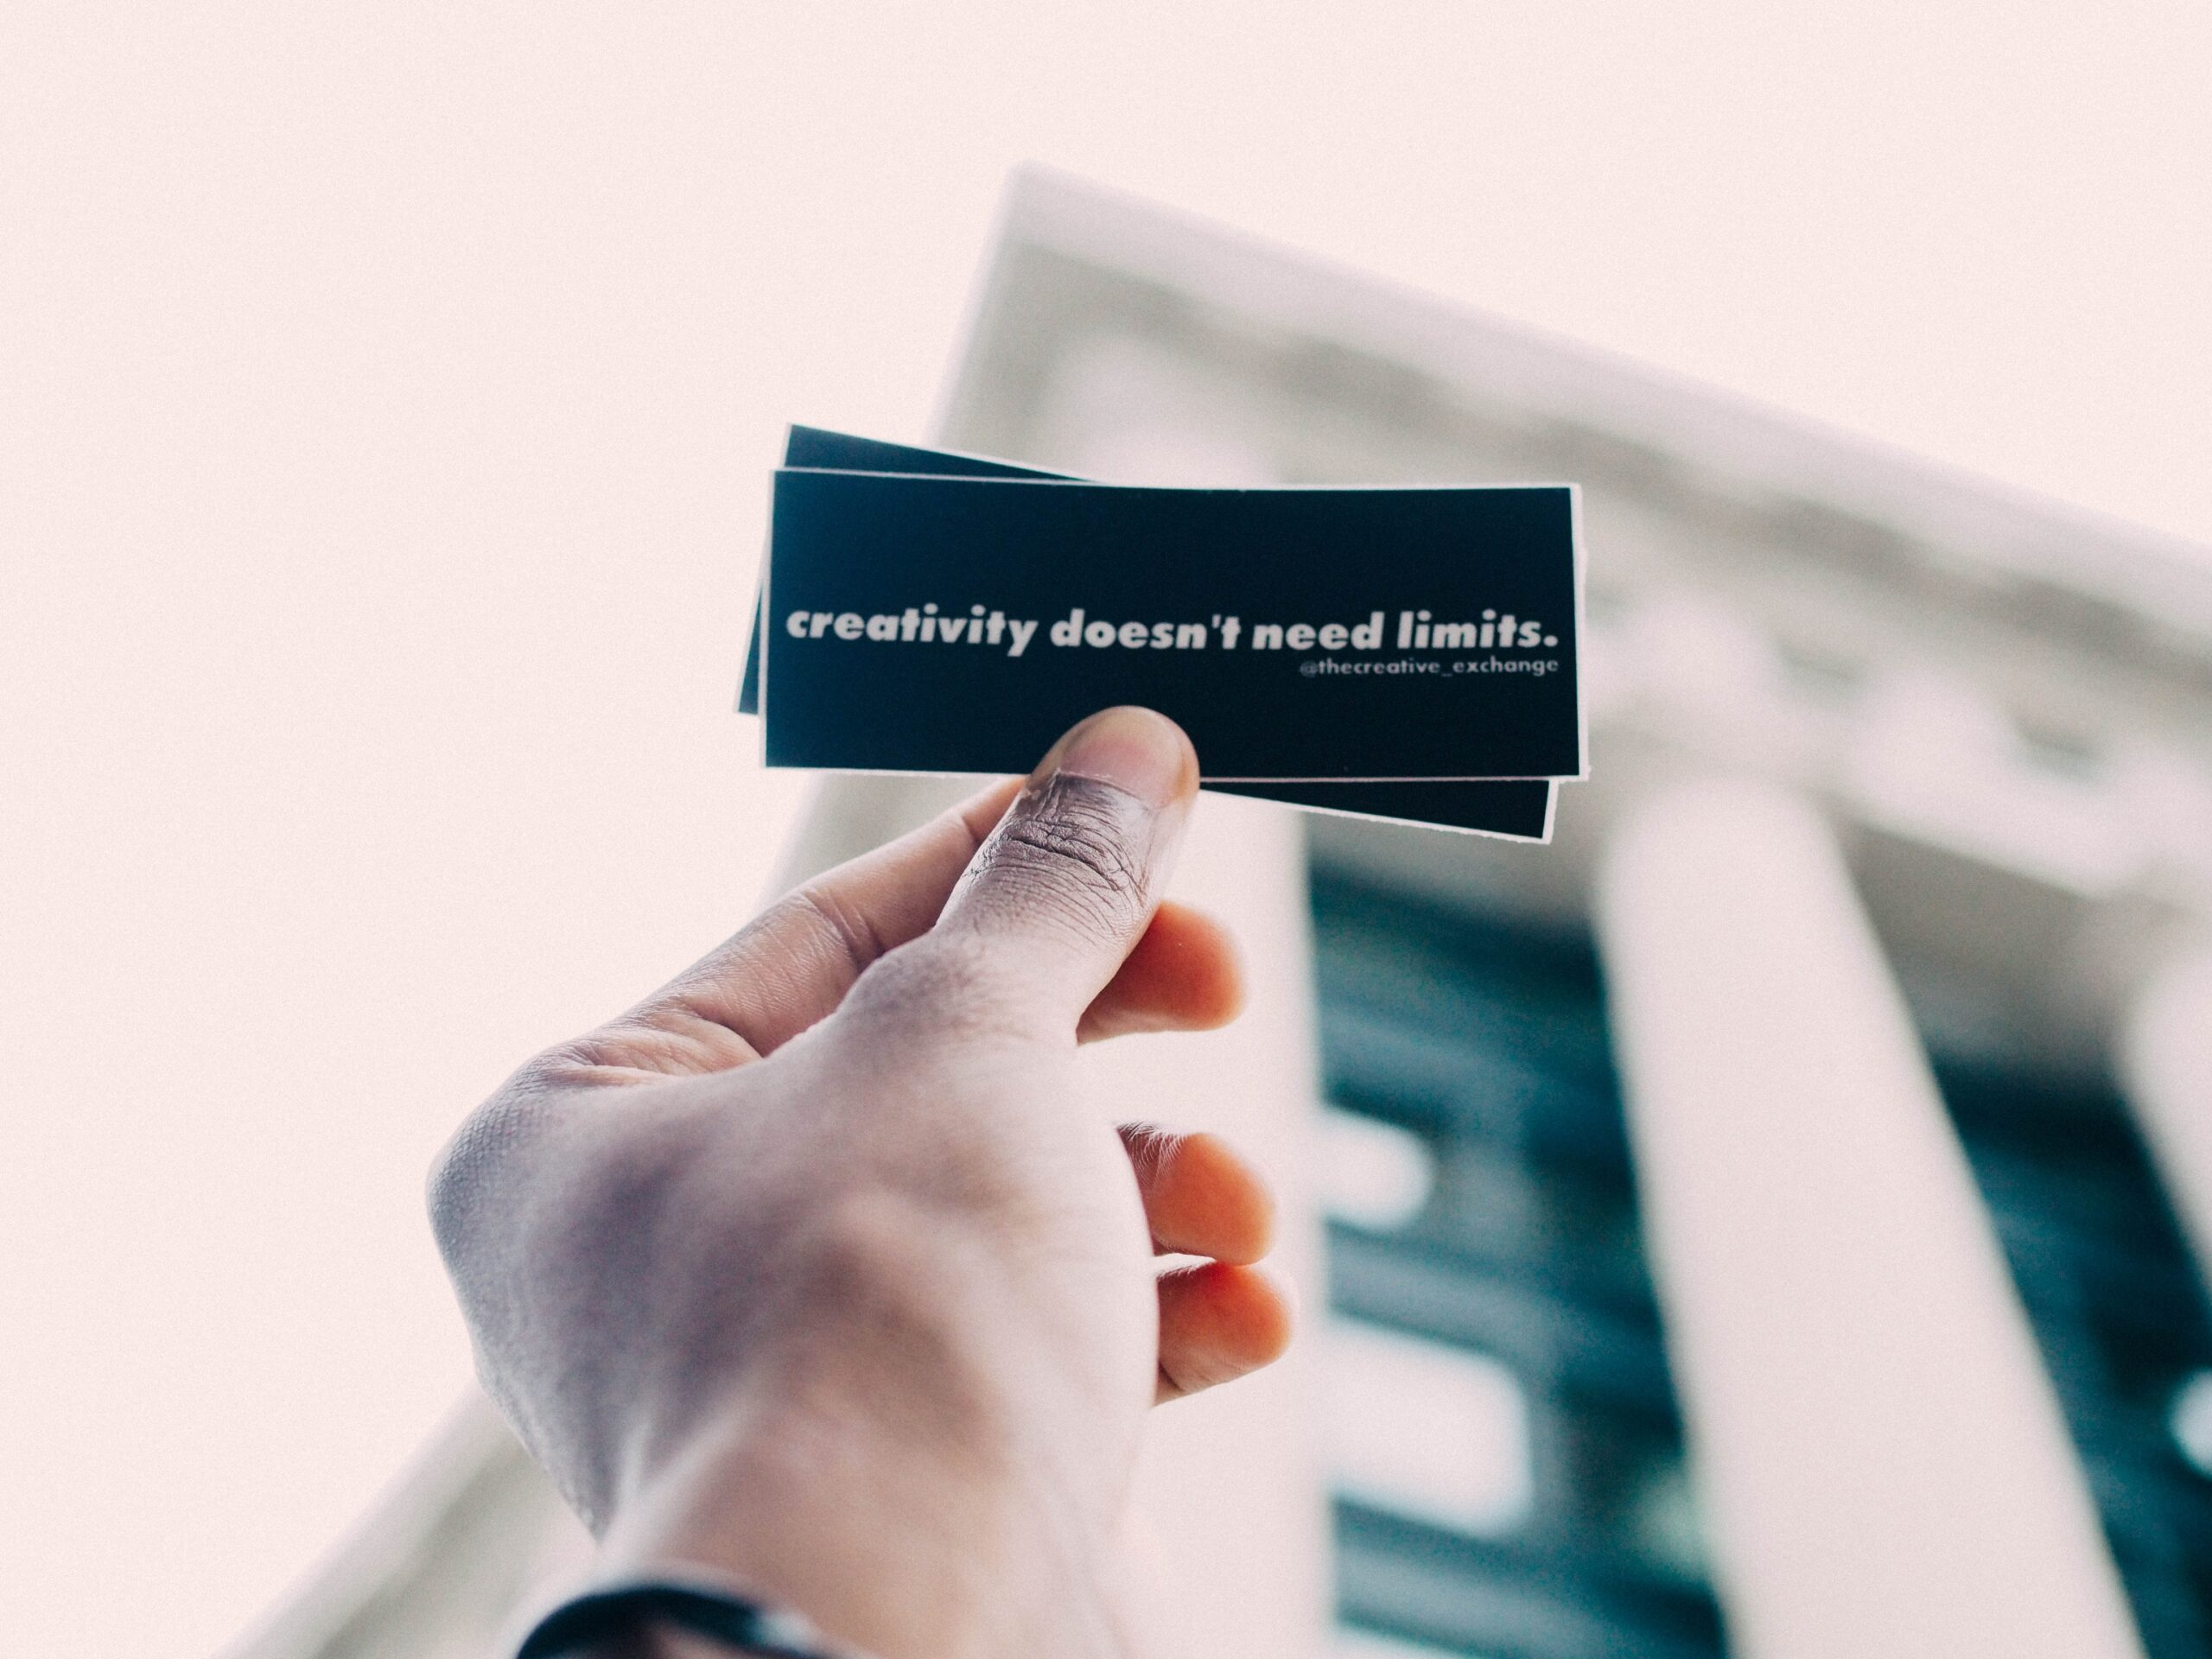 creativity doesn't need a limit - a quote in hand creative juices